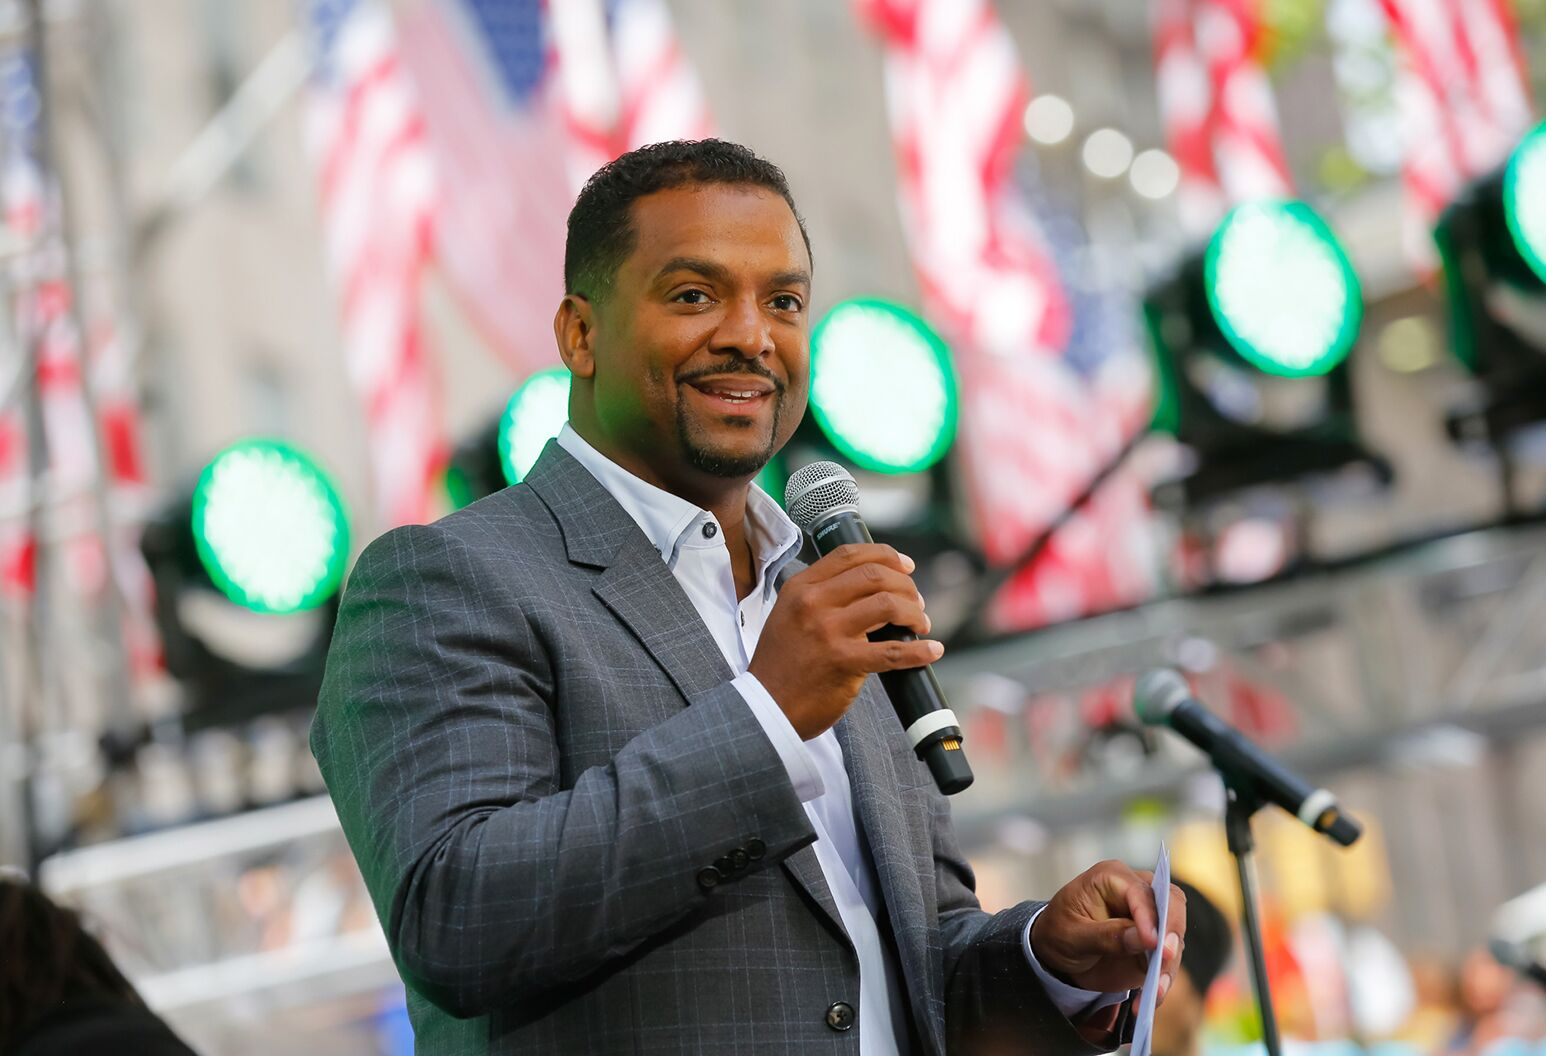 Alfonso Ribeiro as the emcee of Side by Side